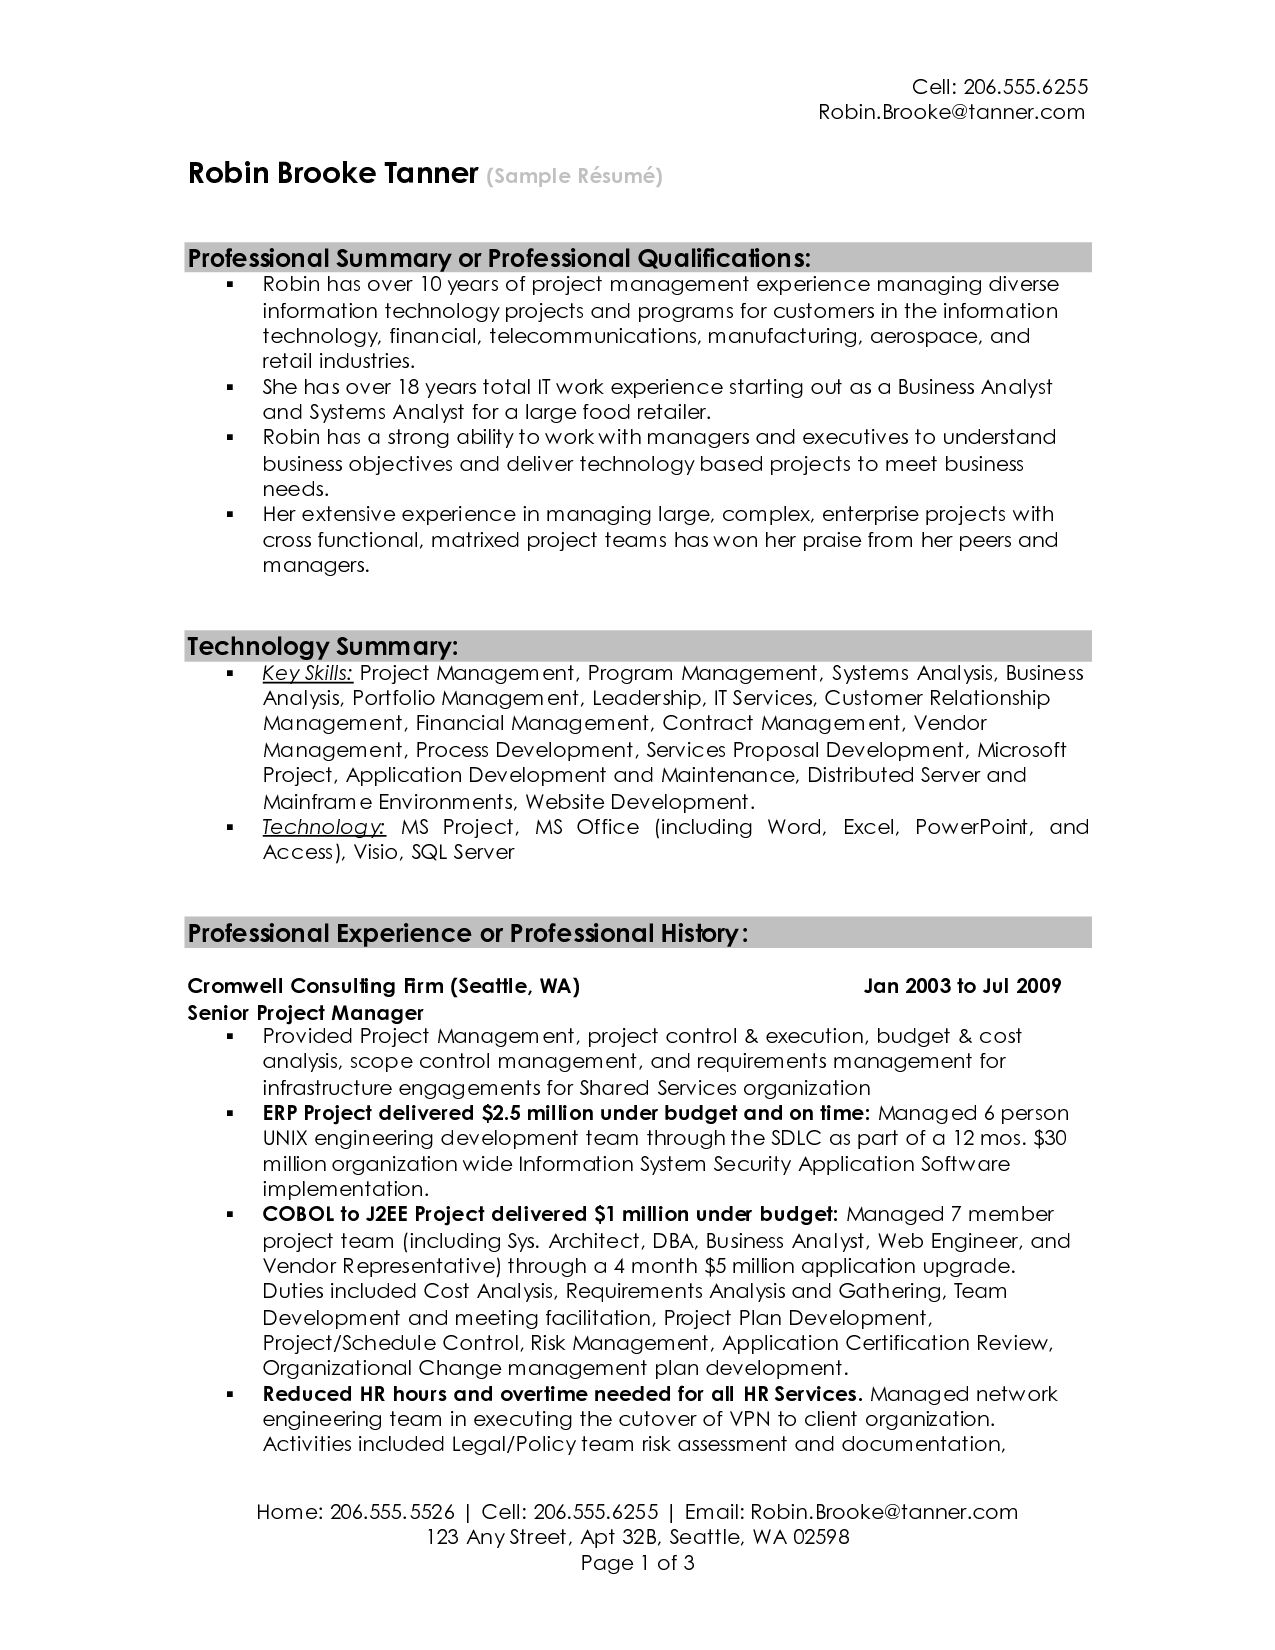 Professional Summary Resume Examples Professional Resume Summary  Example Of Professional Resume